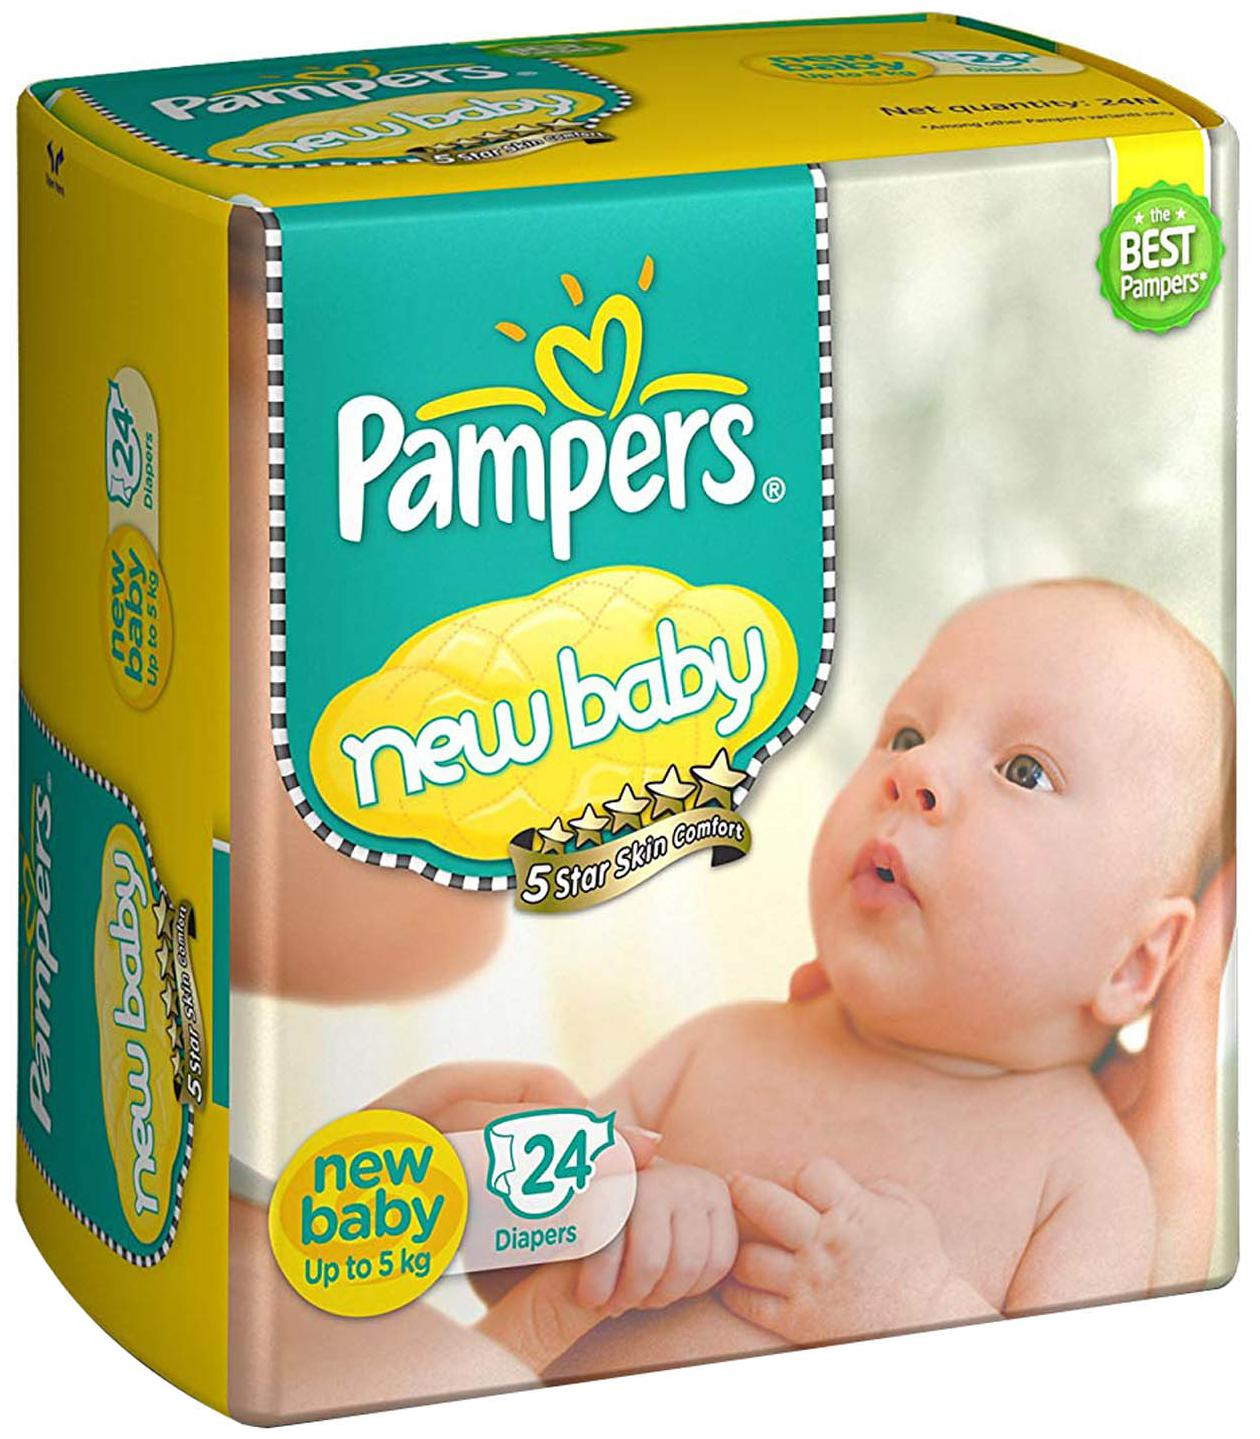 https://assetscdn1.paytm.com/images/catalog/product/F/FA/FASPAMPERS-NEW-APOL35491F4424F4F/1564057141398_0..jpg